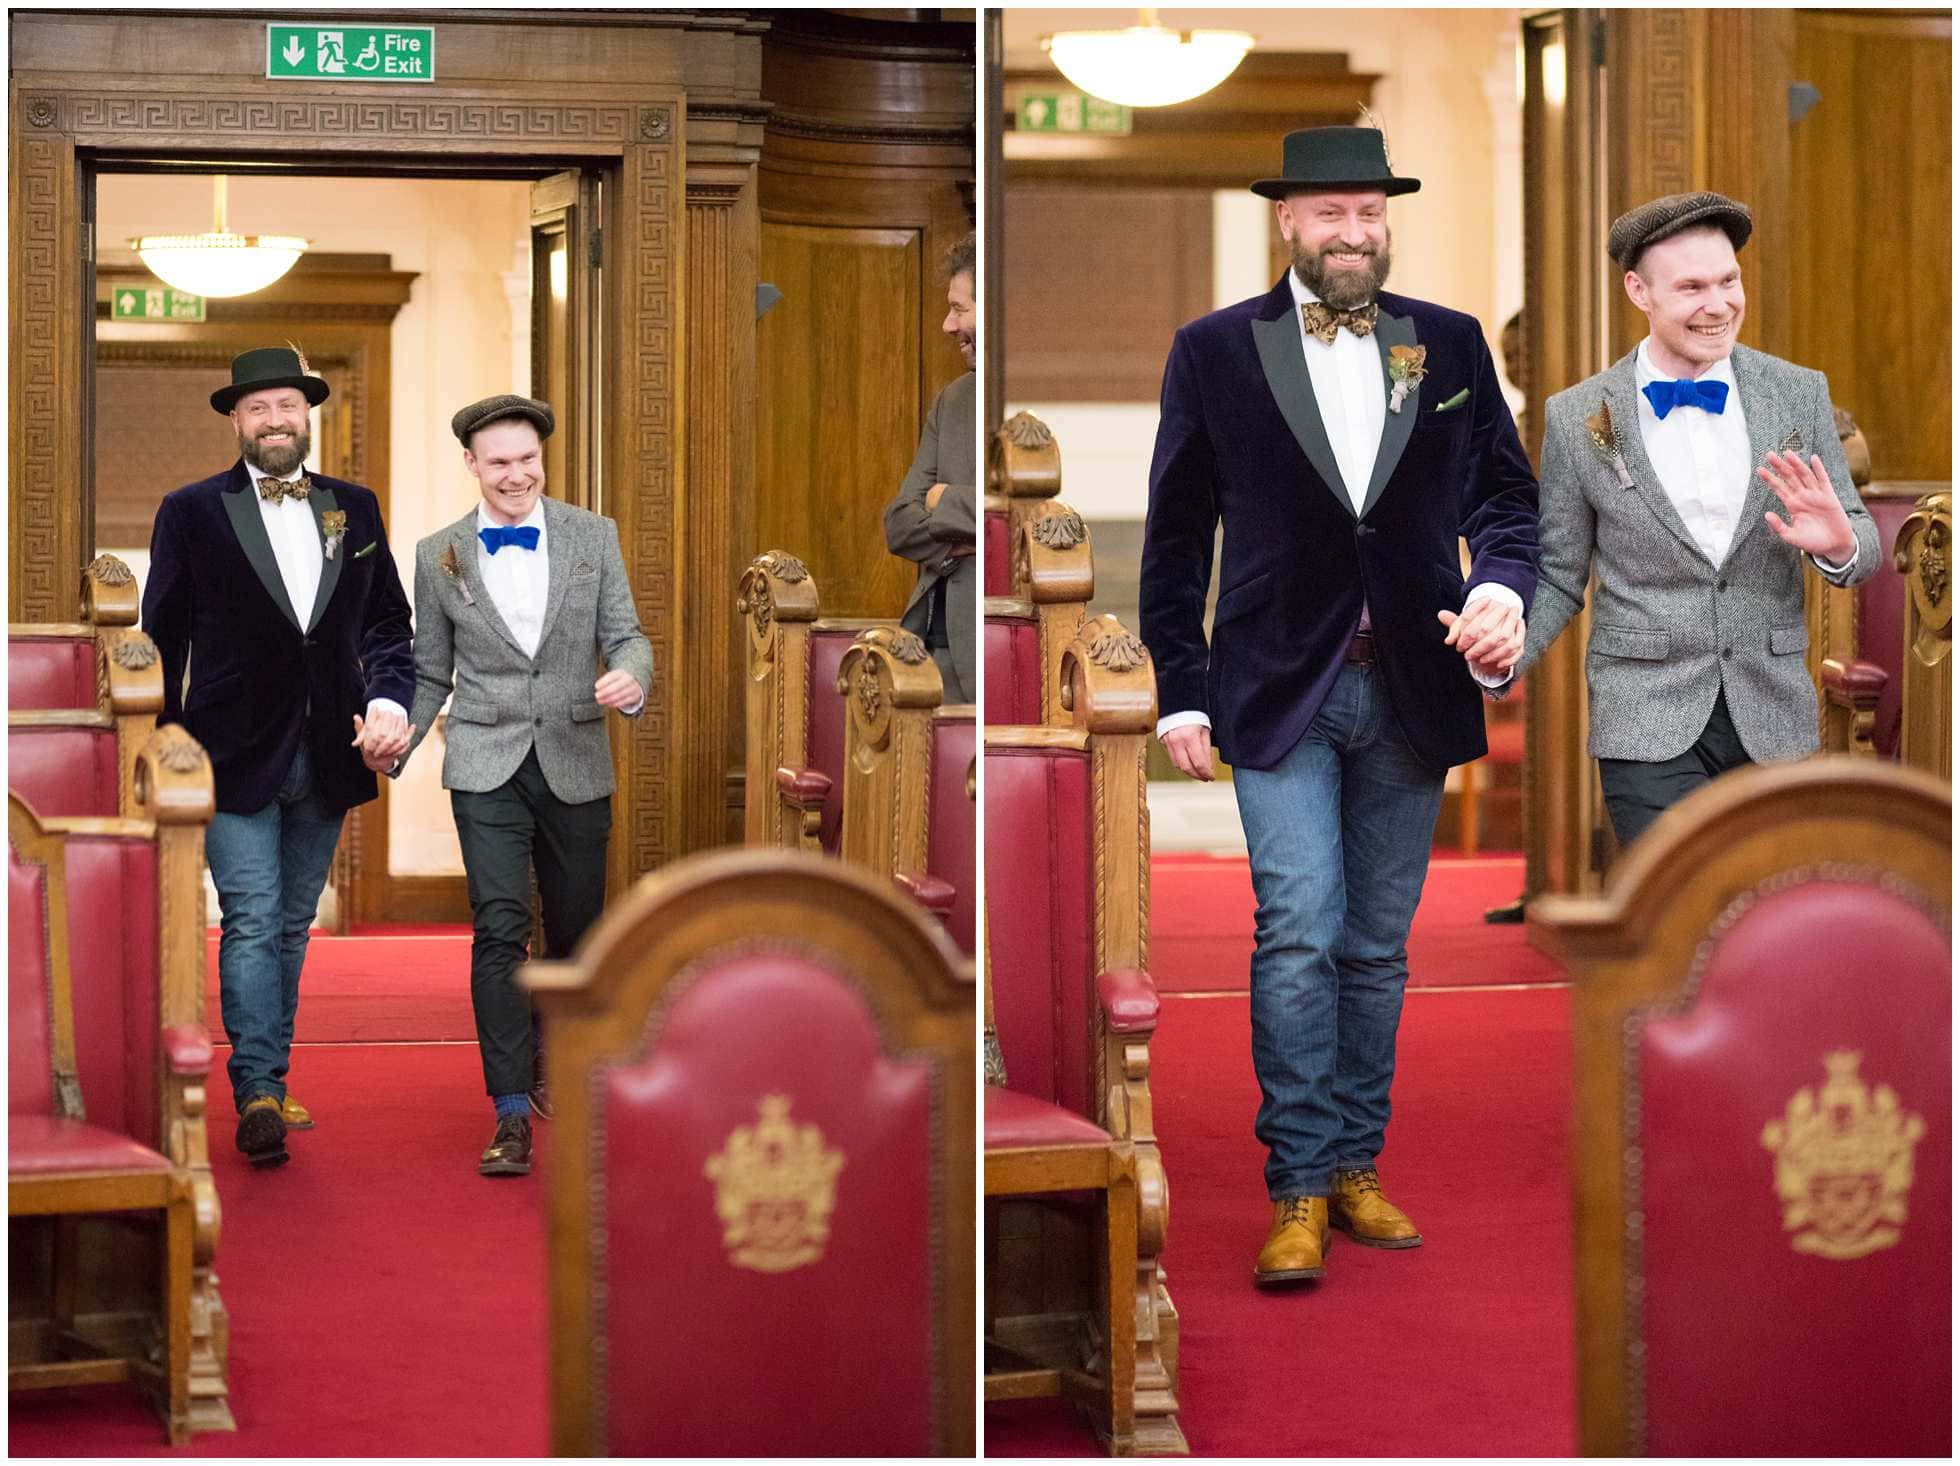 entering the islington town hall wedding room